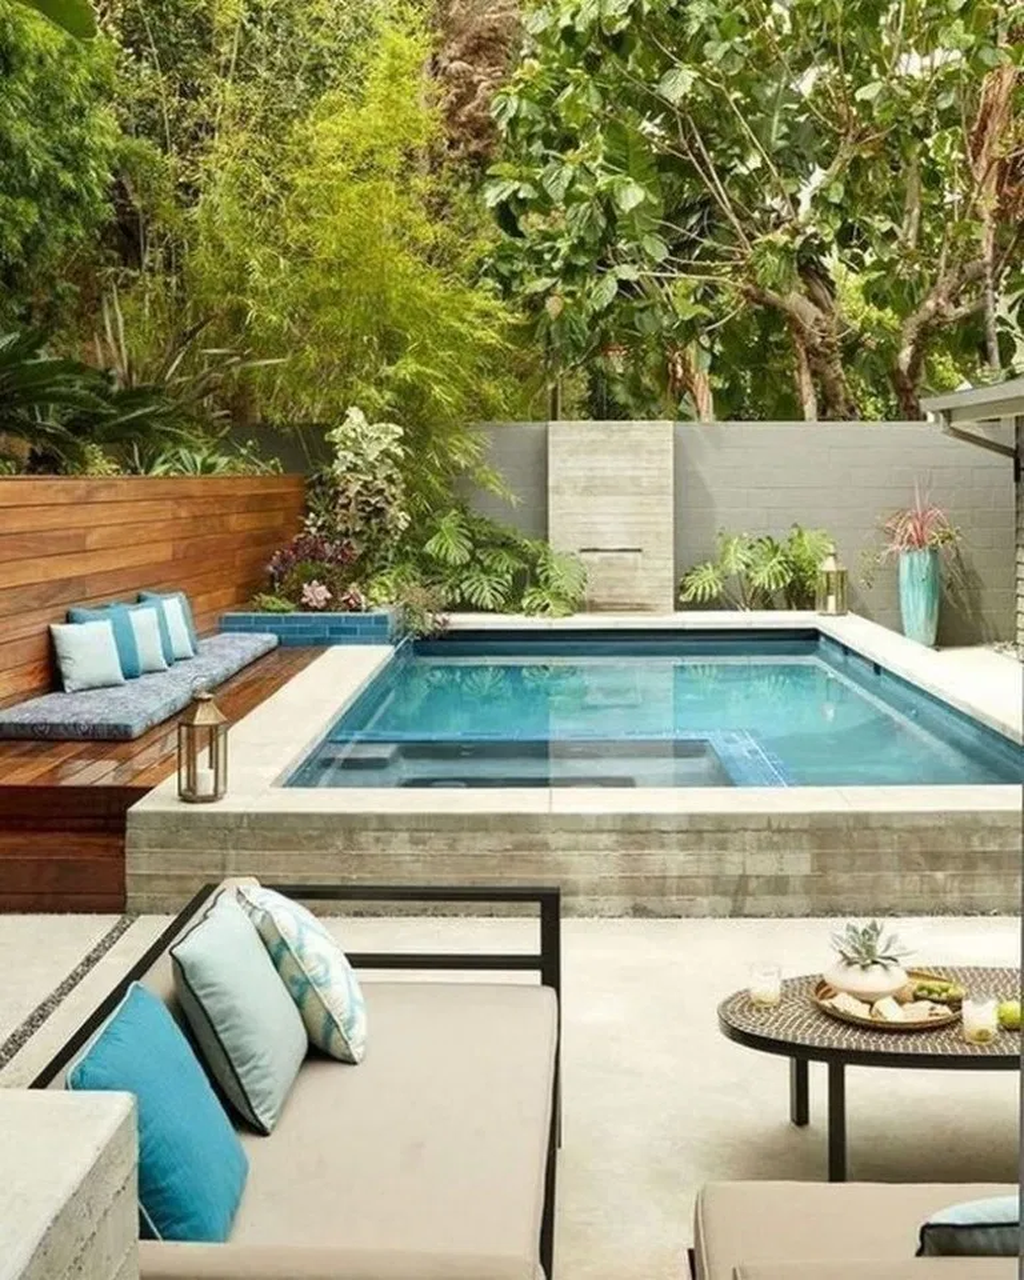 Popular Small Pool Design Ideas For Your Backyard Decor Small Backyard Pools Backyard Pool Designs Small Pool Design